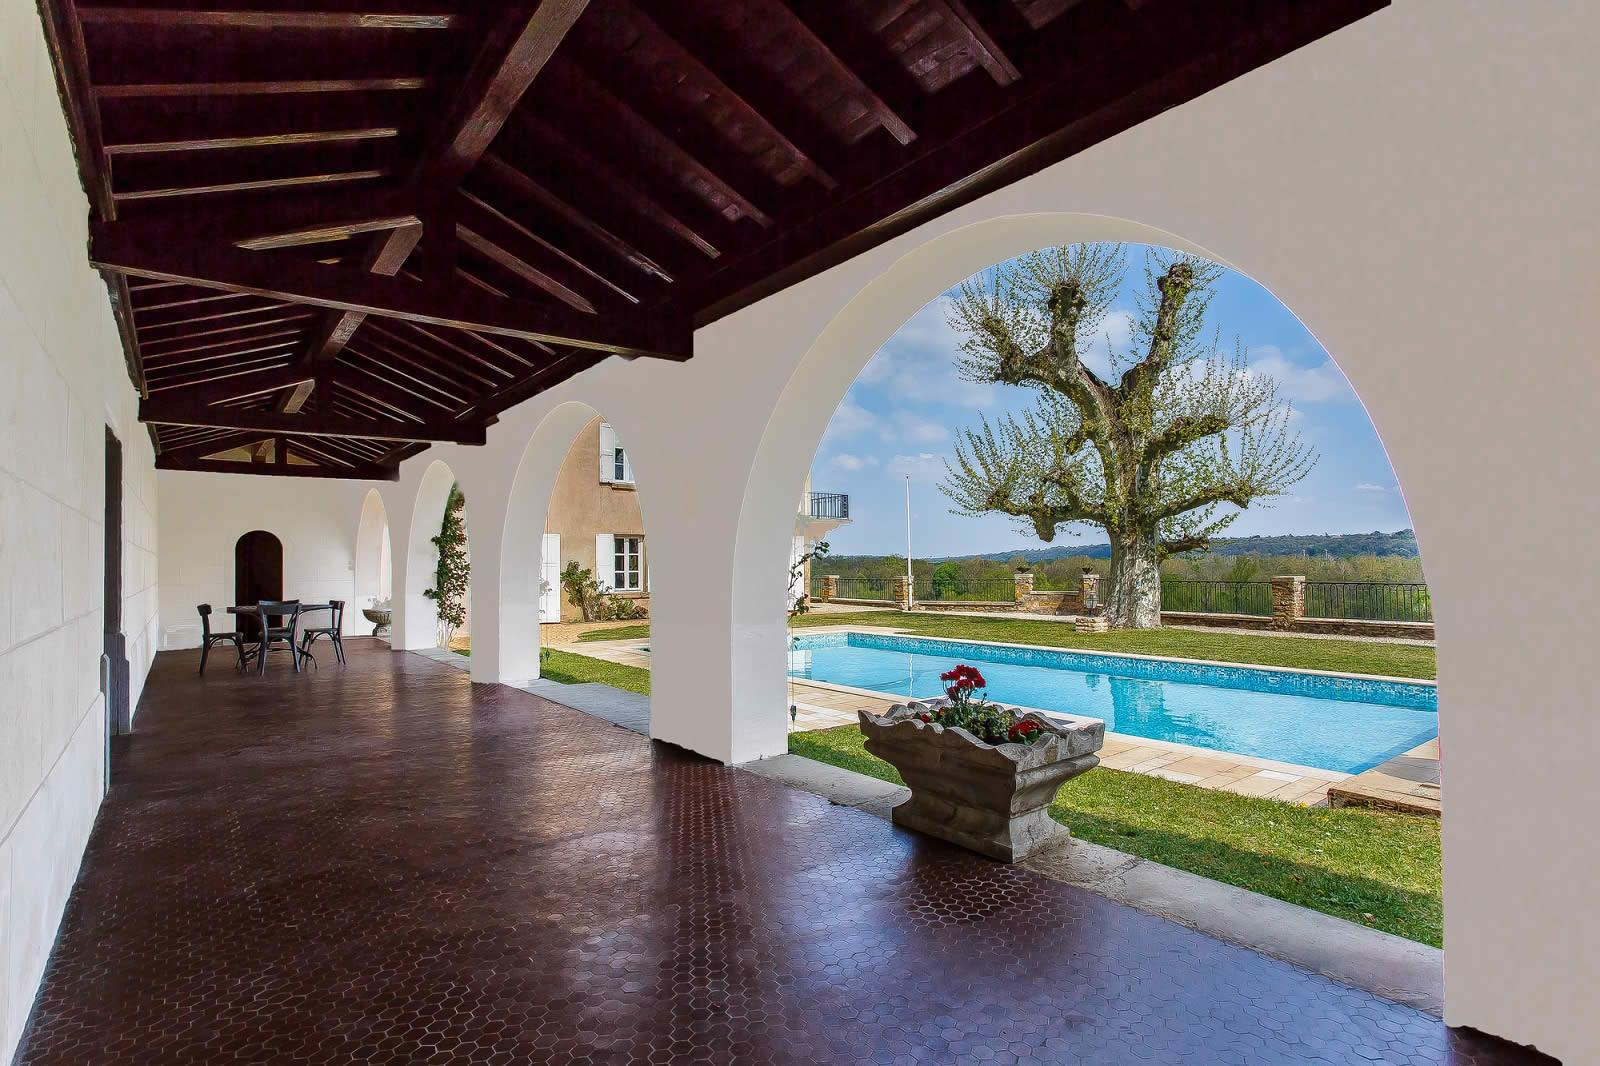 bourgeois house for sale in vernaison: tennis court, swimming pool